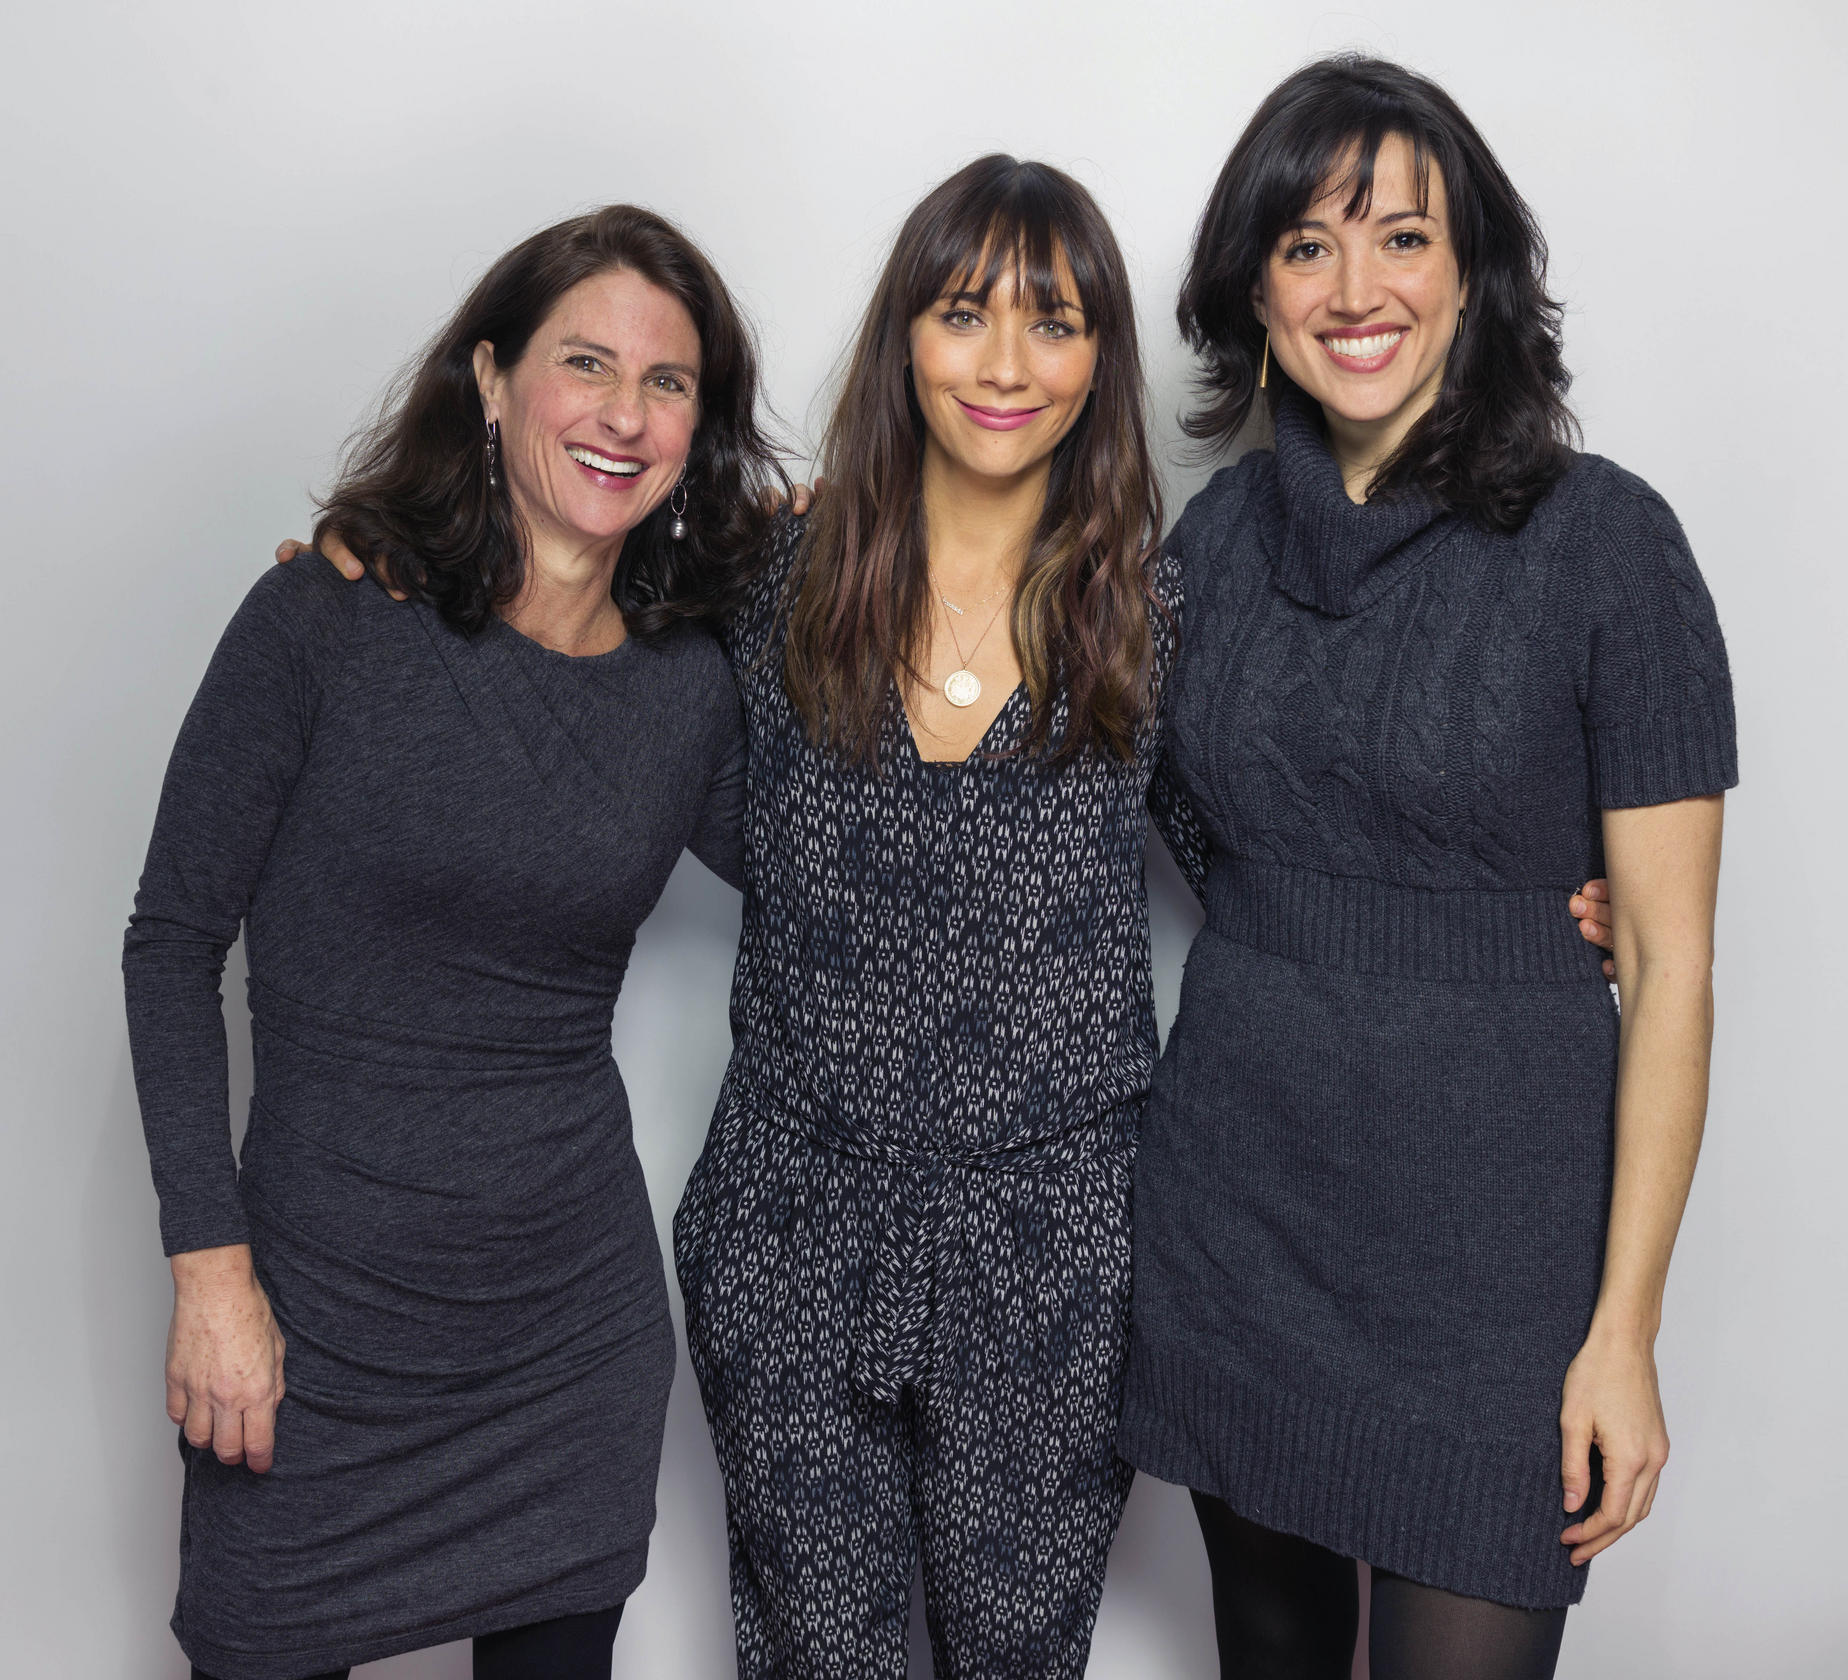 Amateur Pornography - Rashida Jones (centre) and directors Jill Bauer (left) and Ronna Gradus  pose to promote film Hot Girls Wanted. Photo: AP. \